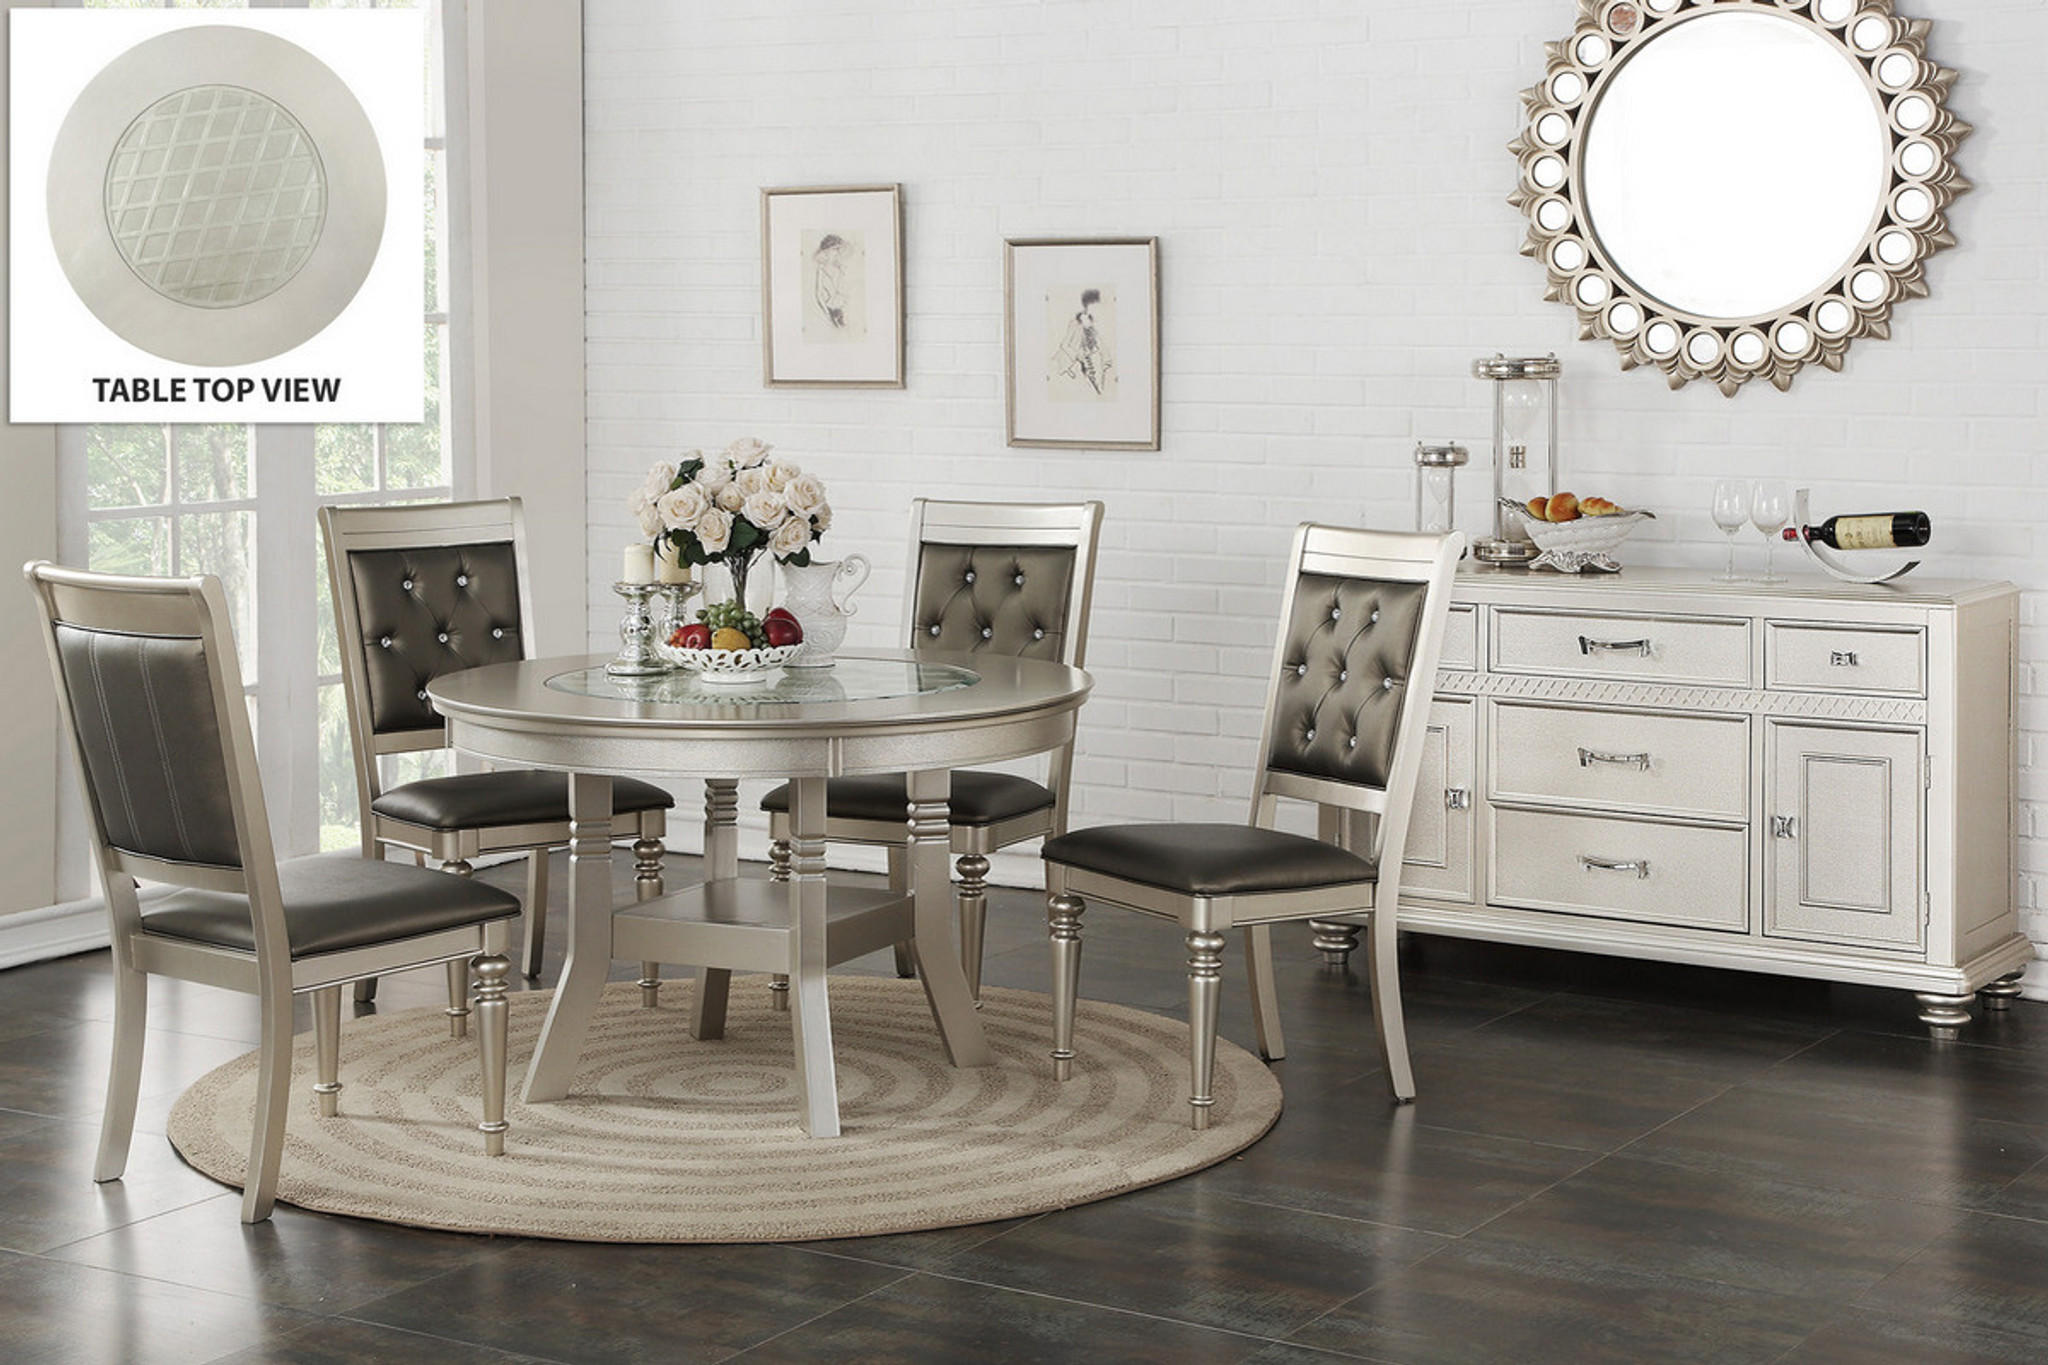 5PCS SILVER ROUND DINING TABLE SET-F2428-F1705 : poundex dining table set - pezcame.com